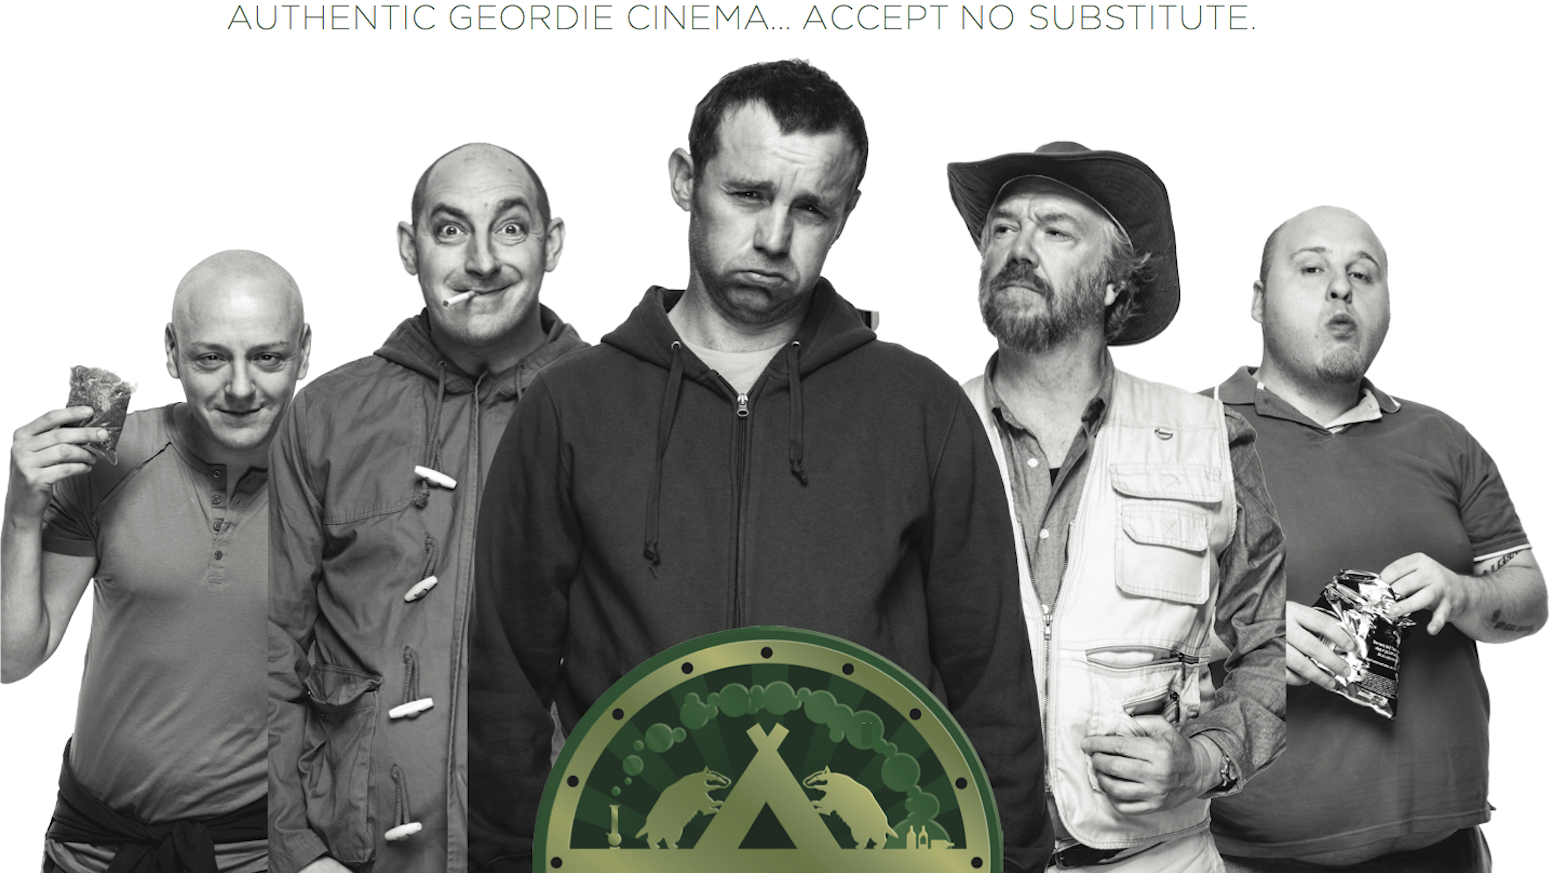 """Hilarious film, Geordie as f**k!"" Vulgar and low brow. Release held hostage by exorbitant BBFC costs."